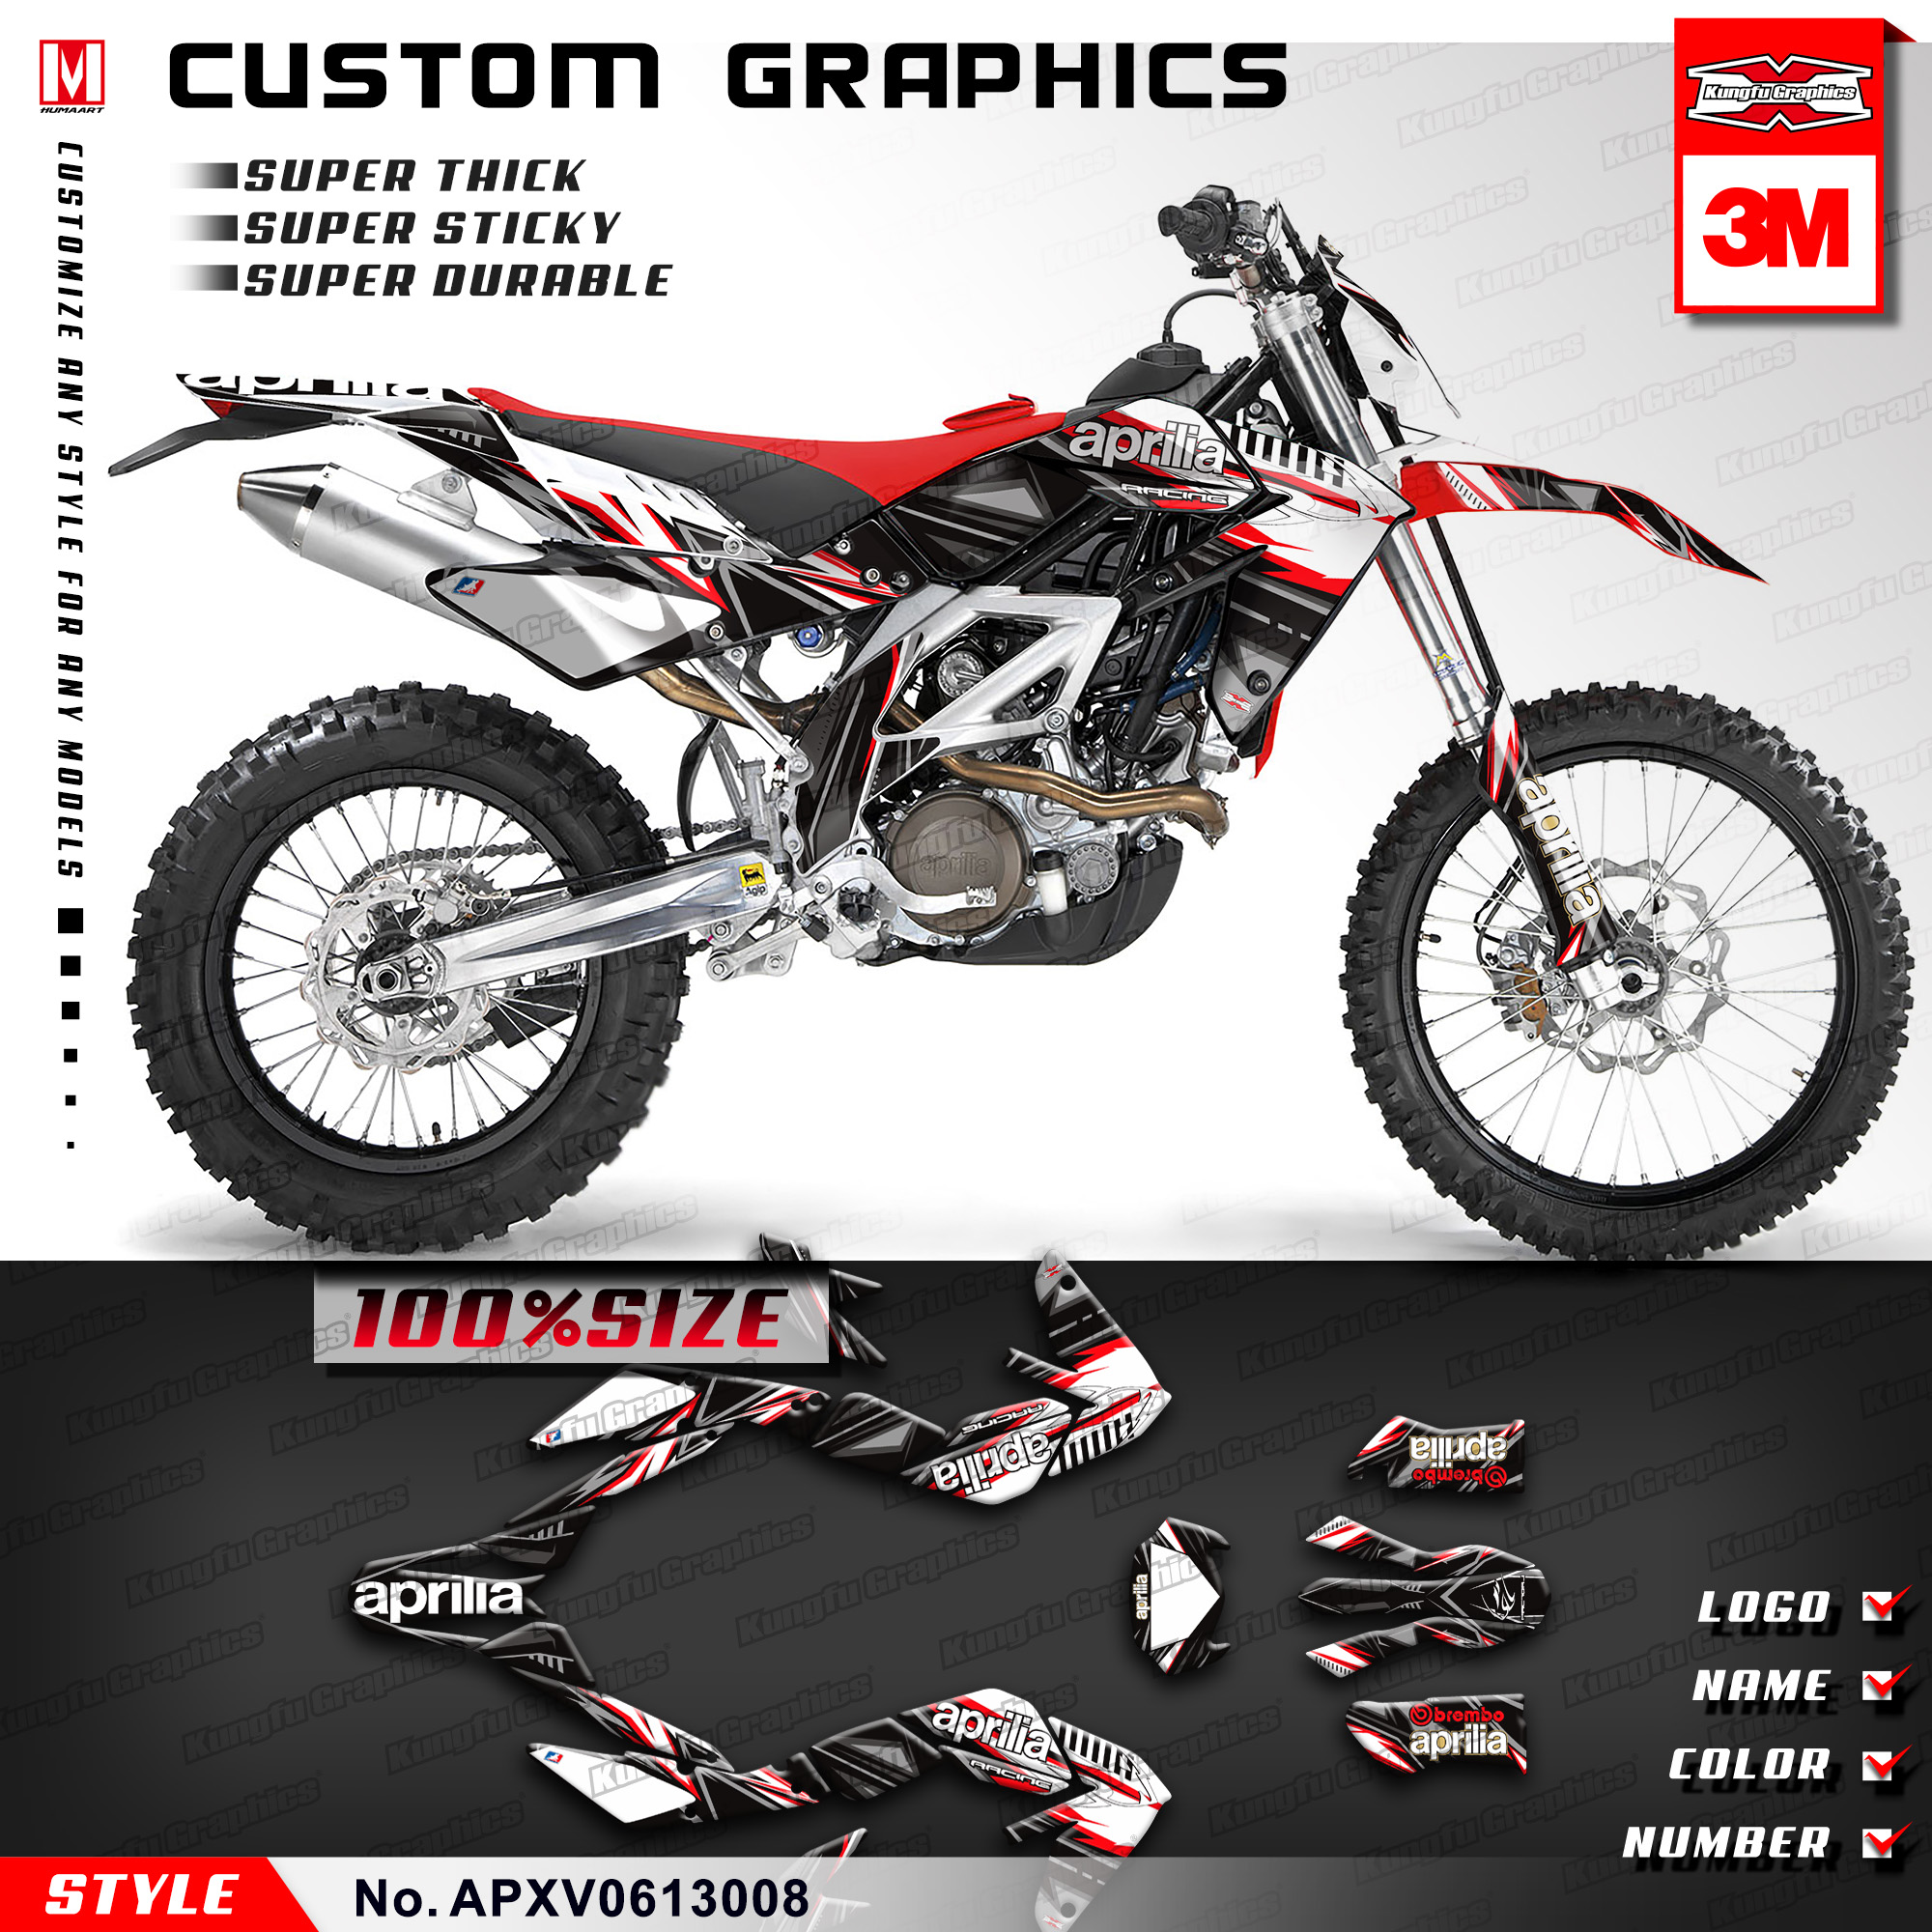 KUNGFU GRAPHICS Custom Vinyl Decals Fit Aprilia SXV RXV 450 550 2006 2007 2008 2009 2010